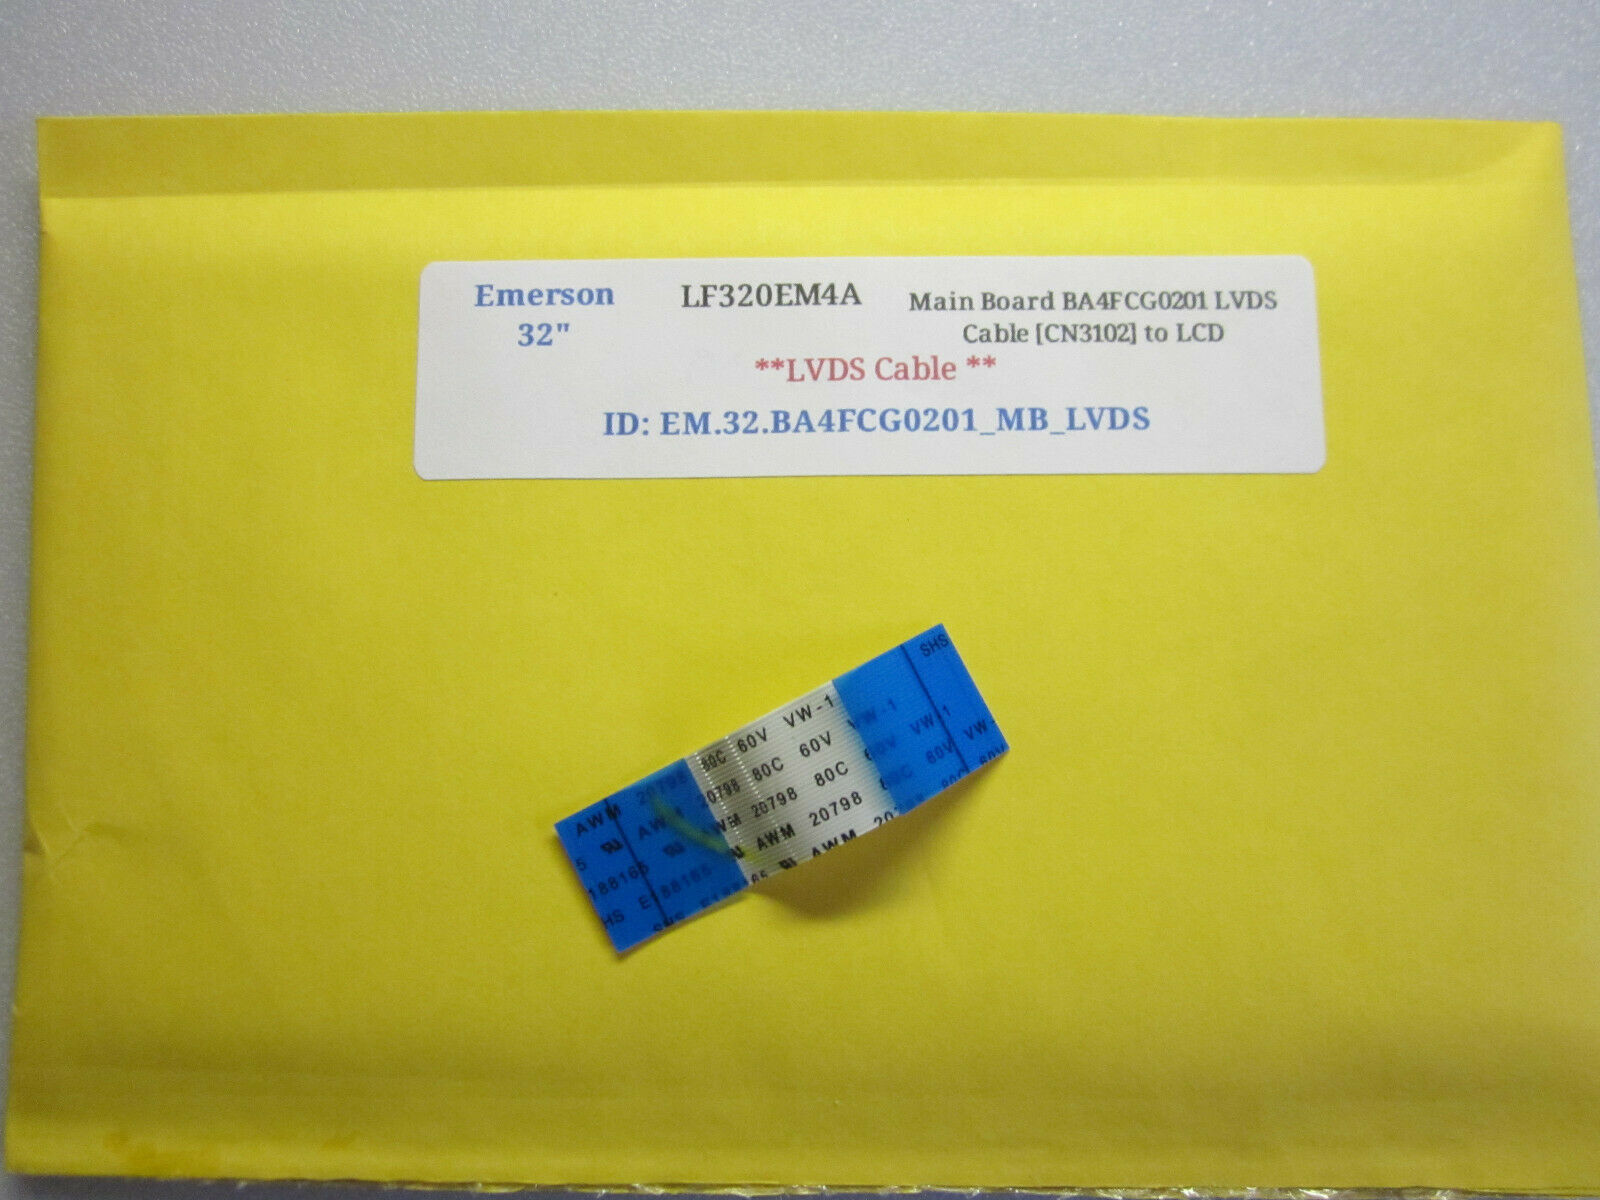 "Primary image for Emerson 32"" LF320EM4A Main Board BA4FCG0201 Cable [CN3101] to Keypad Controller"